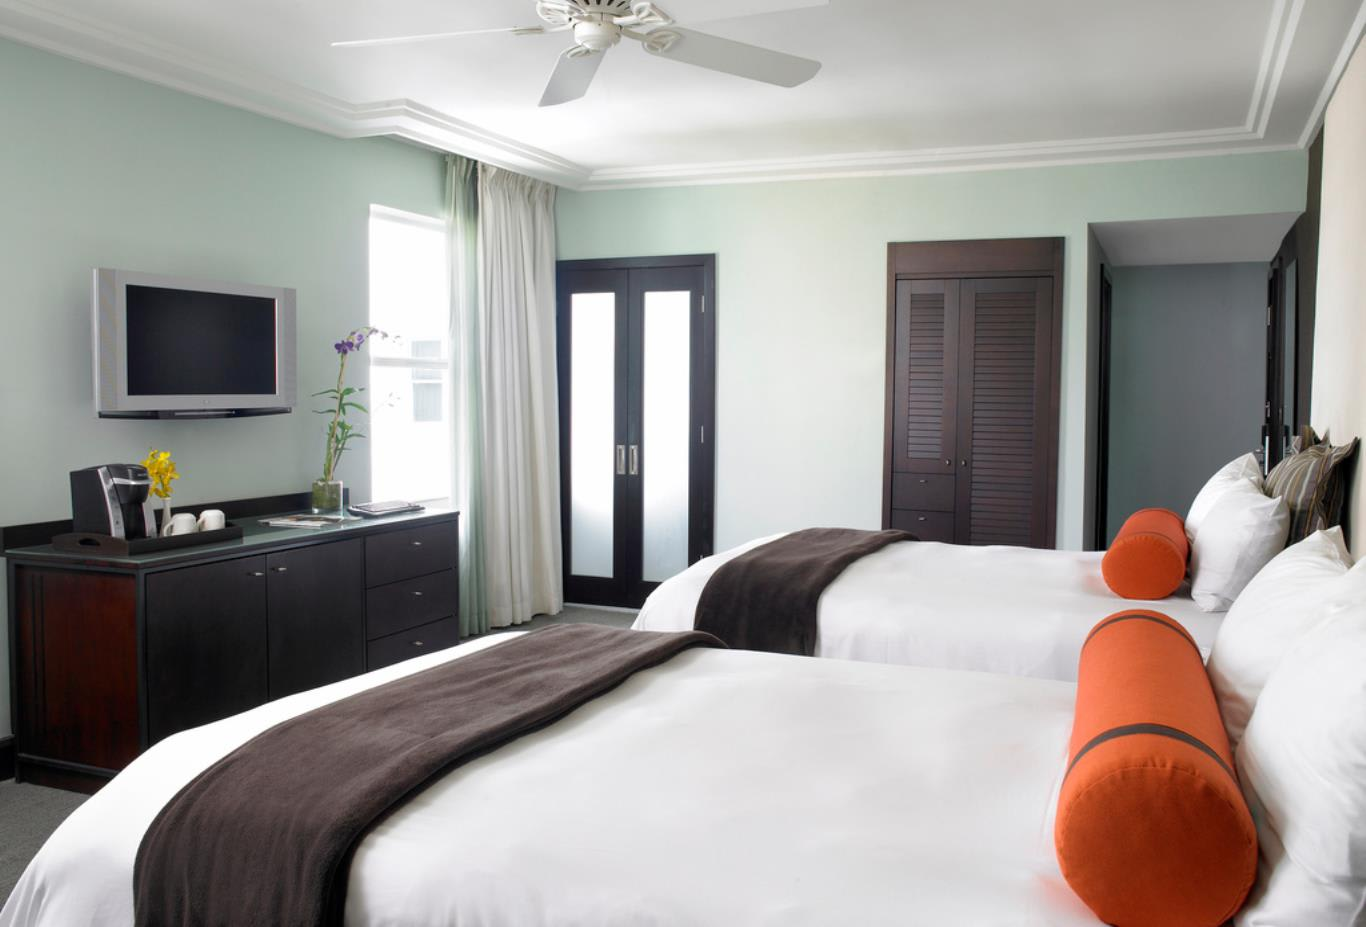 City View Room With Two Double Beds